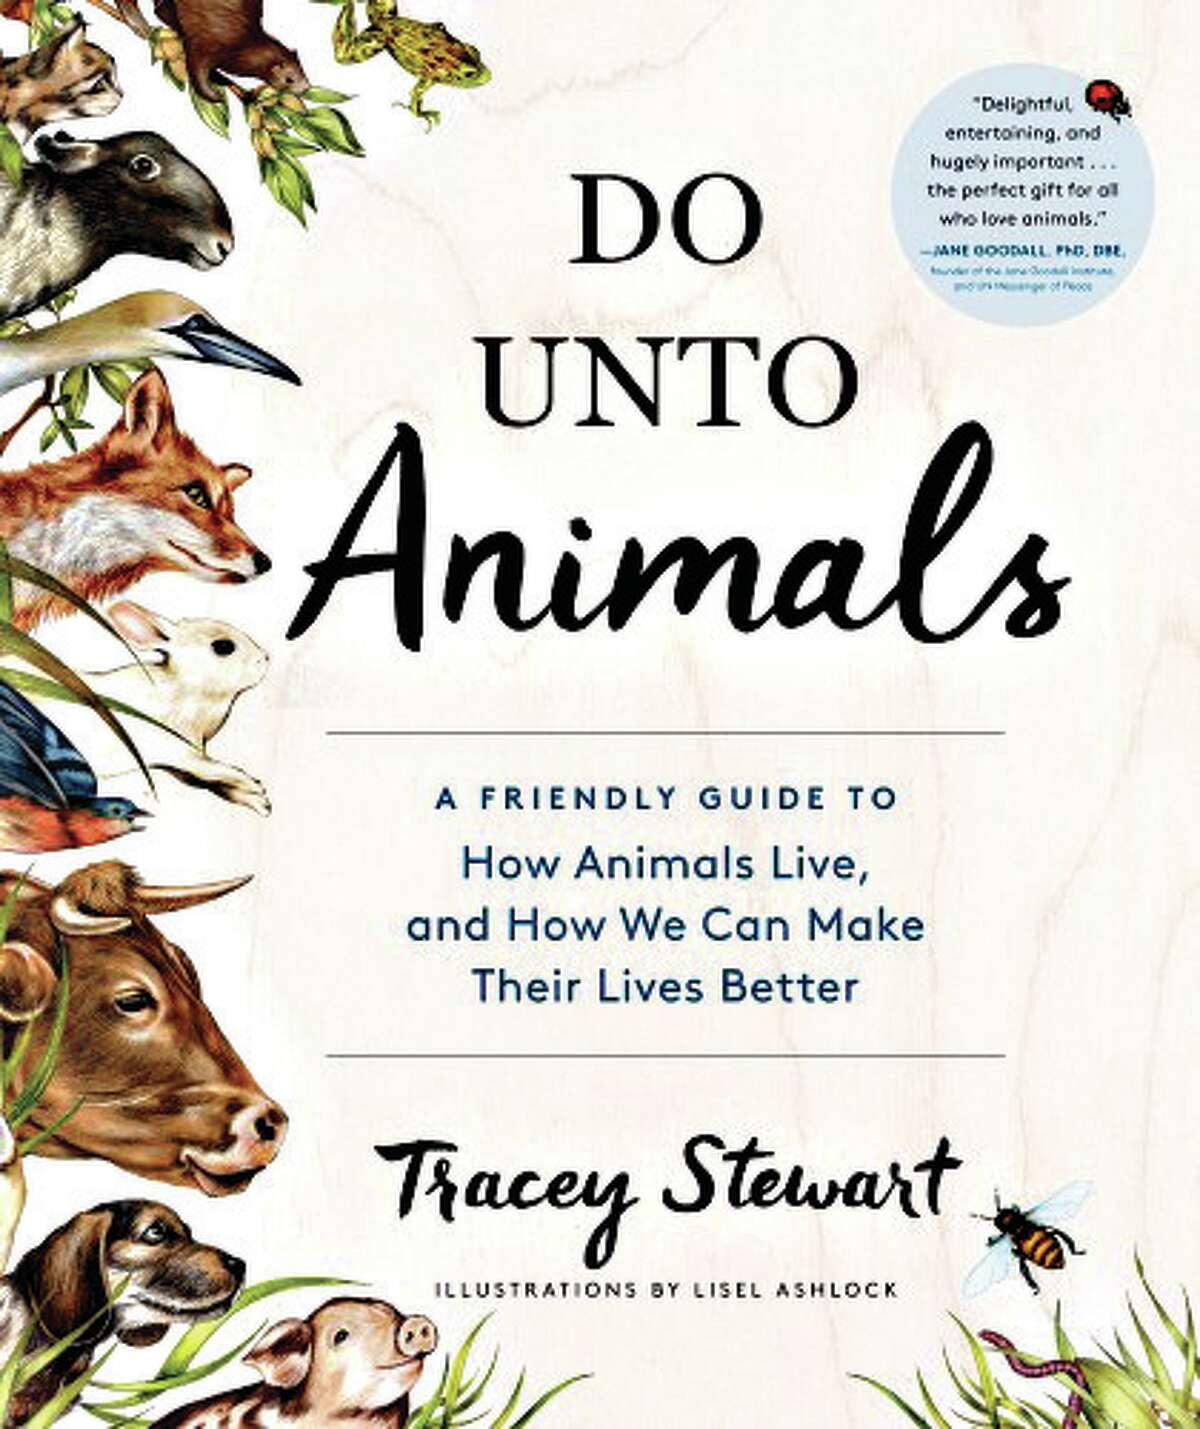 ?Do Unto Animals: A Friendly Guide to How Animals Live, and How We Can Make their Lives Better? (Workman Press, 2015) by Tracey Stewart and Lisel Ashlock